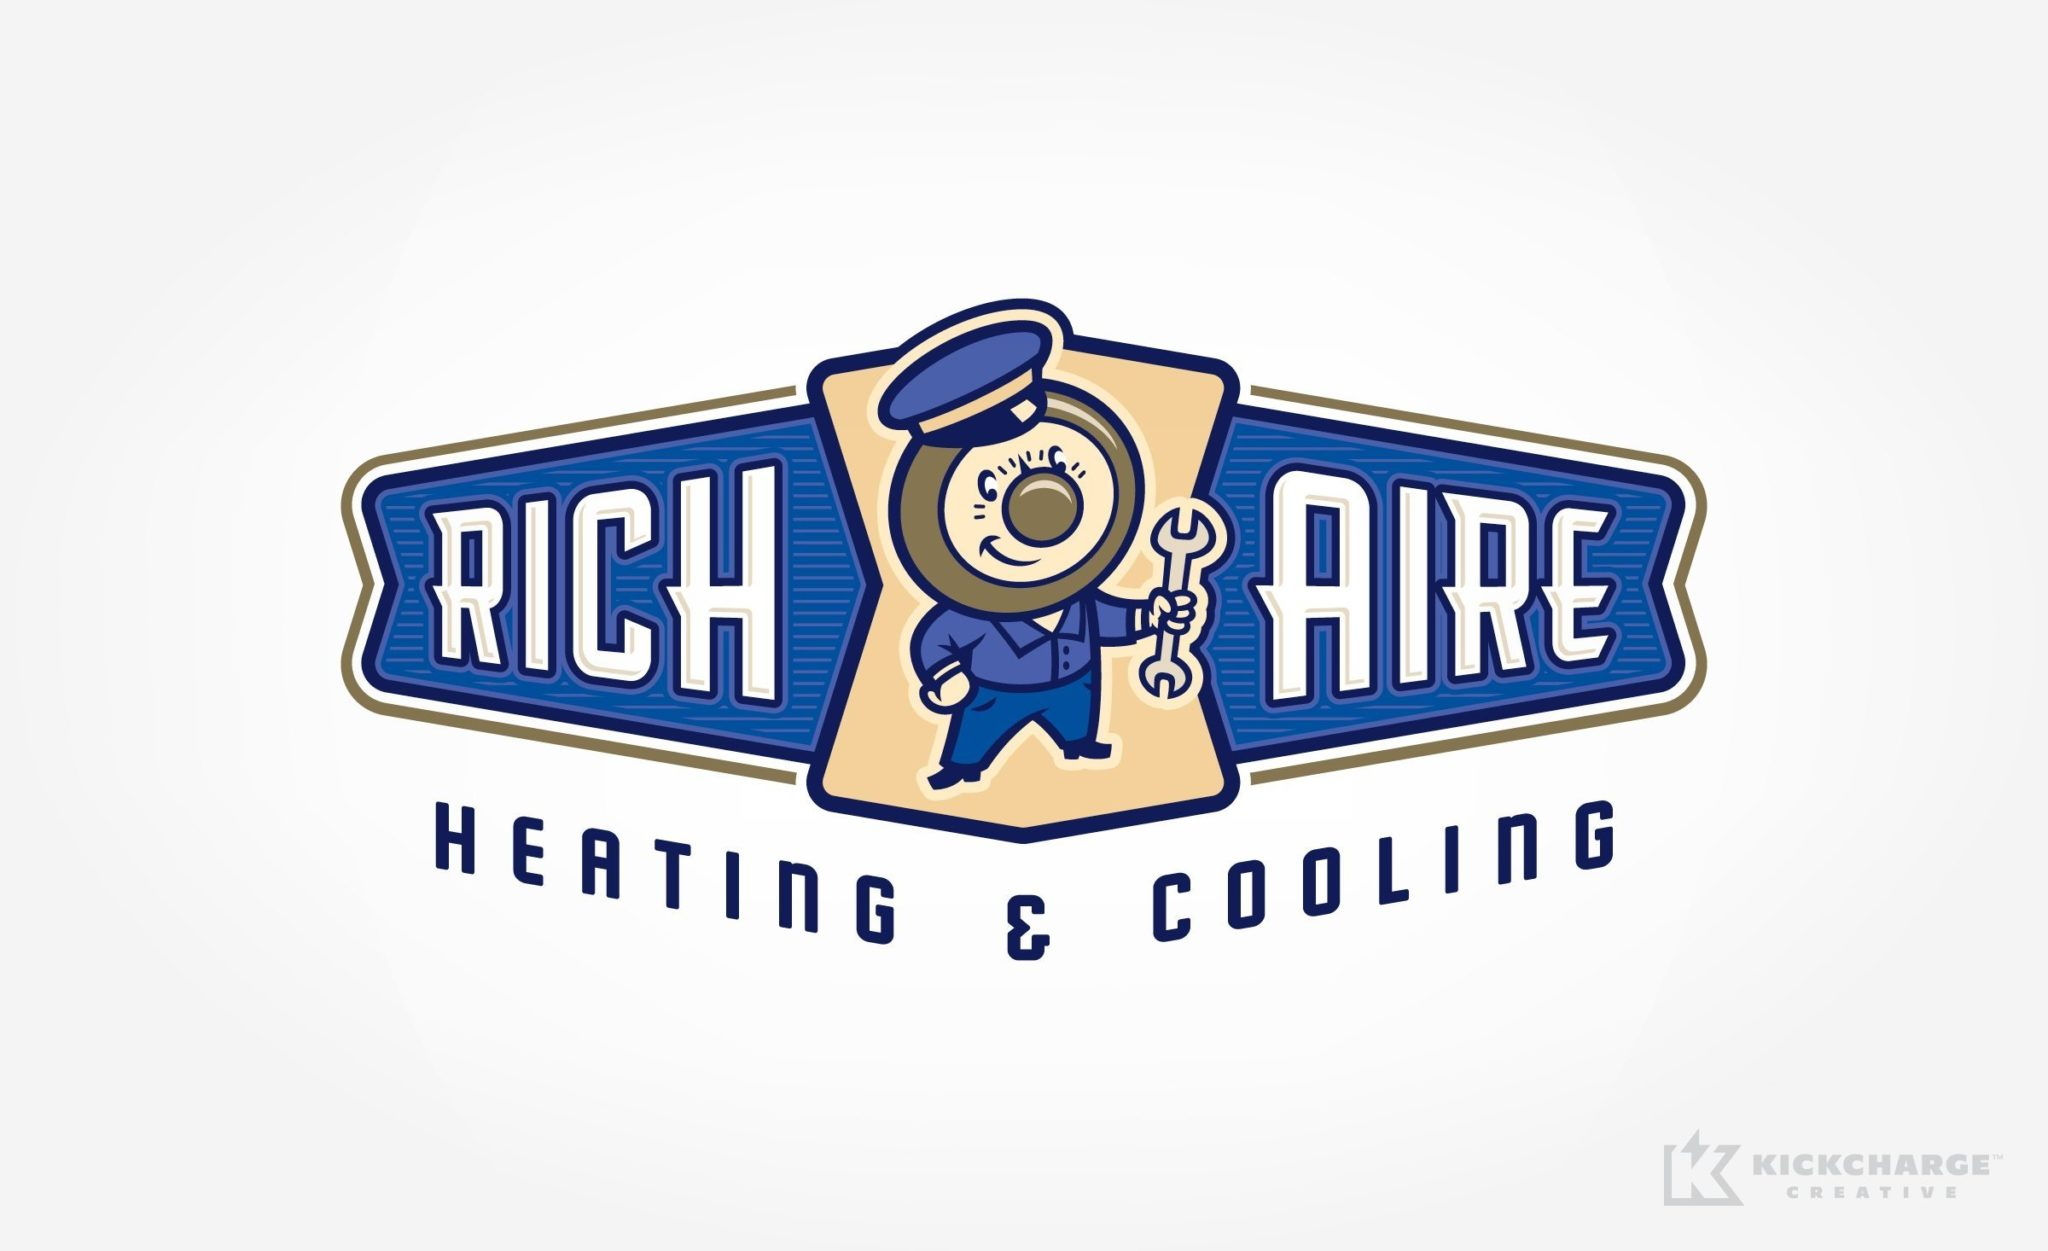 Rich Aire Heating & Cooling